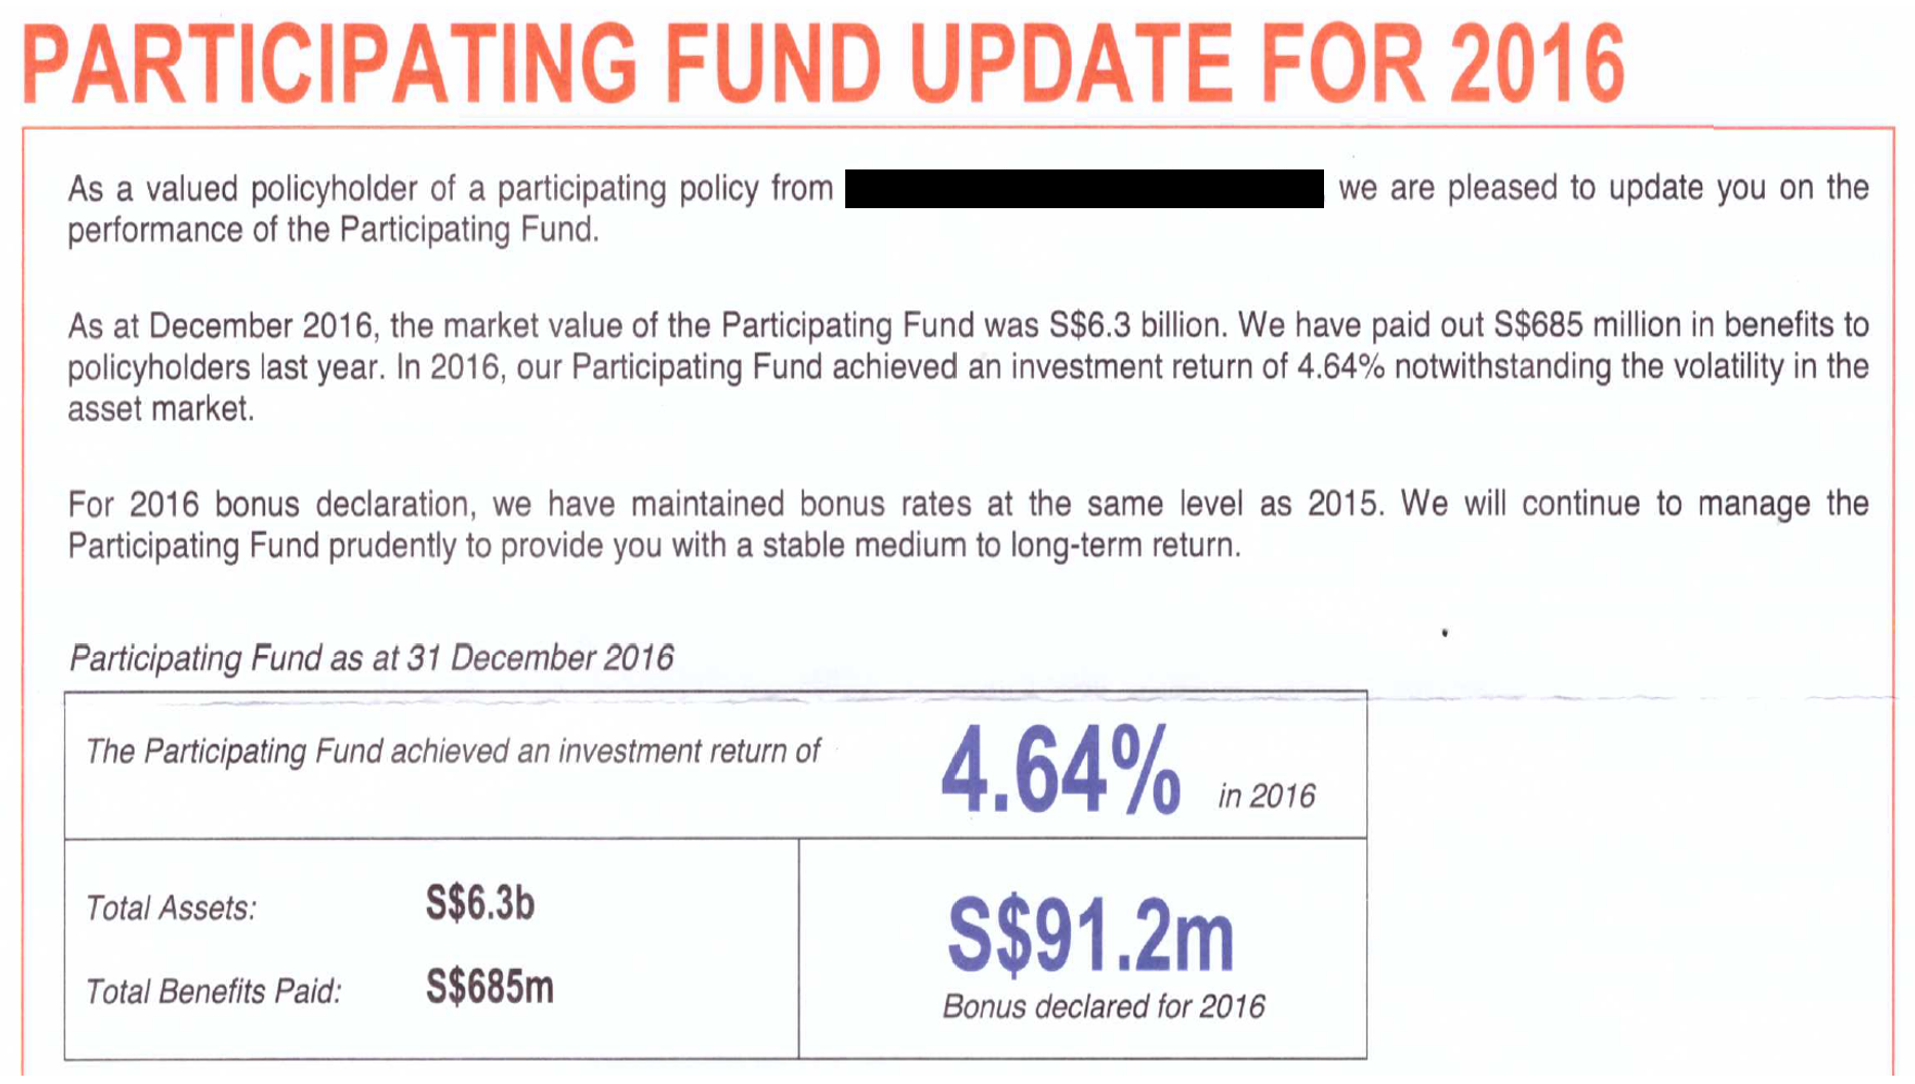 Participating Fund Update for 2016